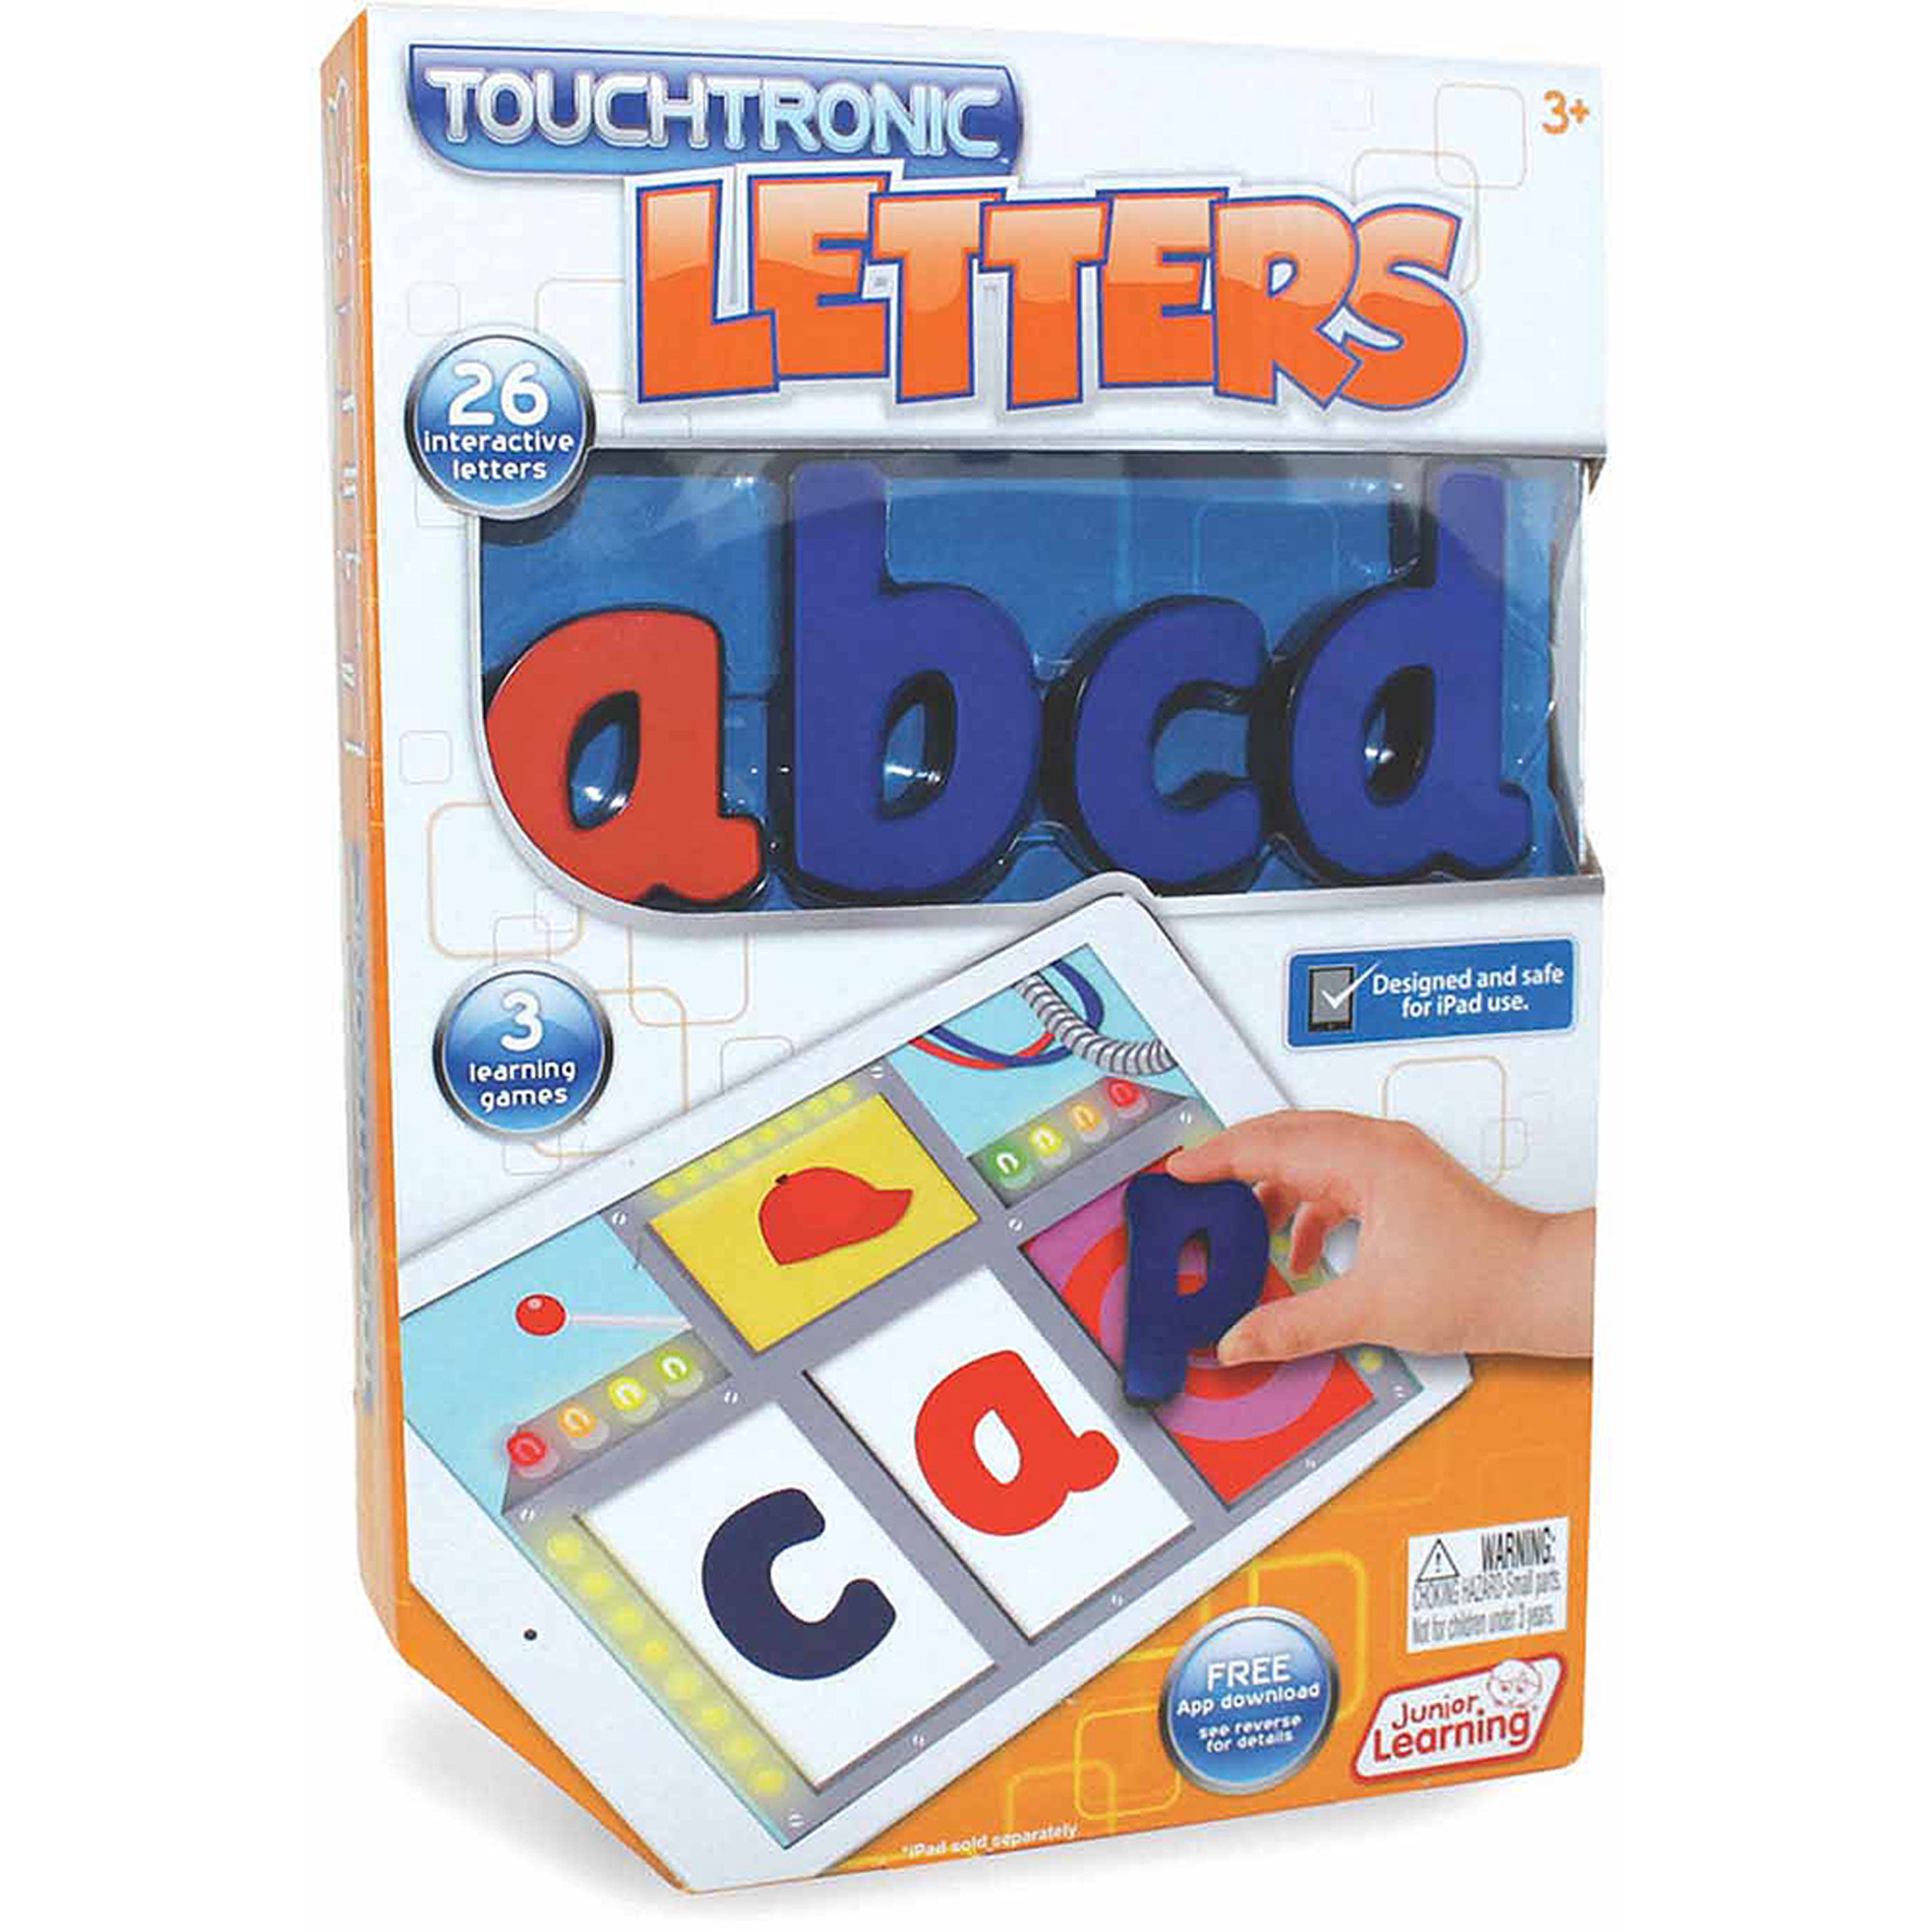 Junior Learning Touchtronic Letters, Award Winning Interactive Learning Toy for iPad